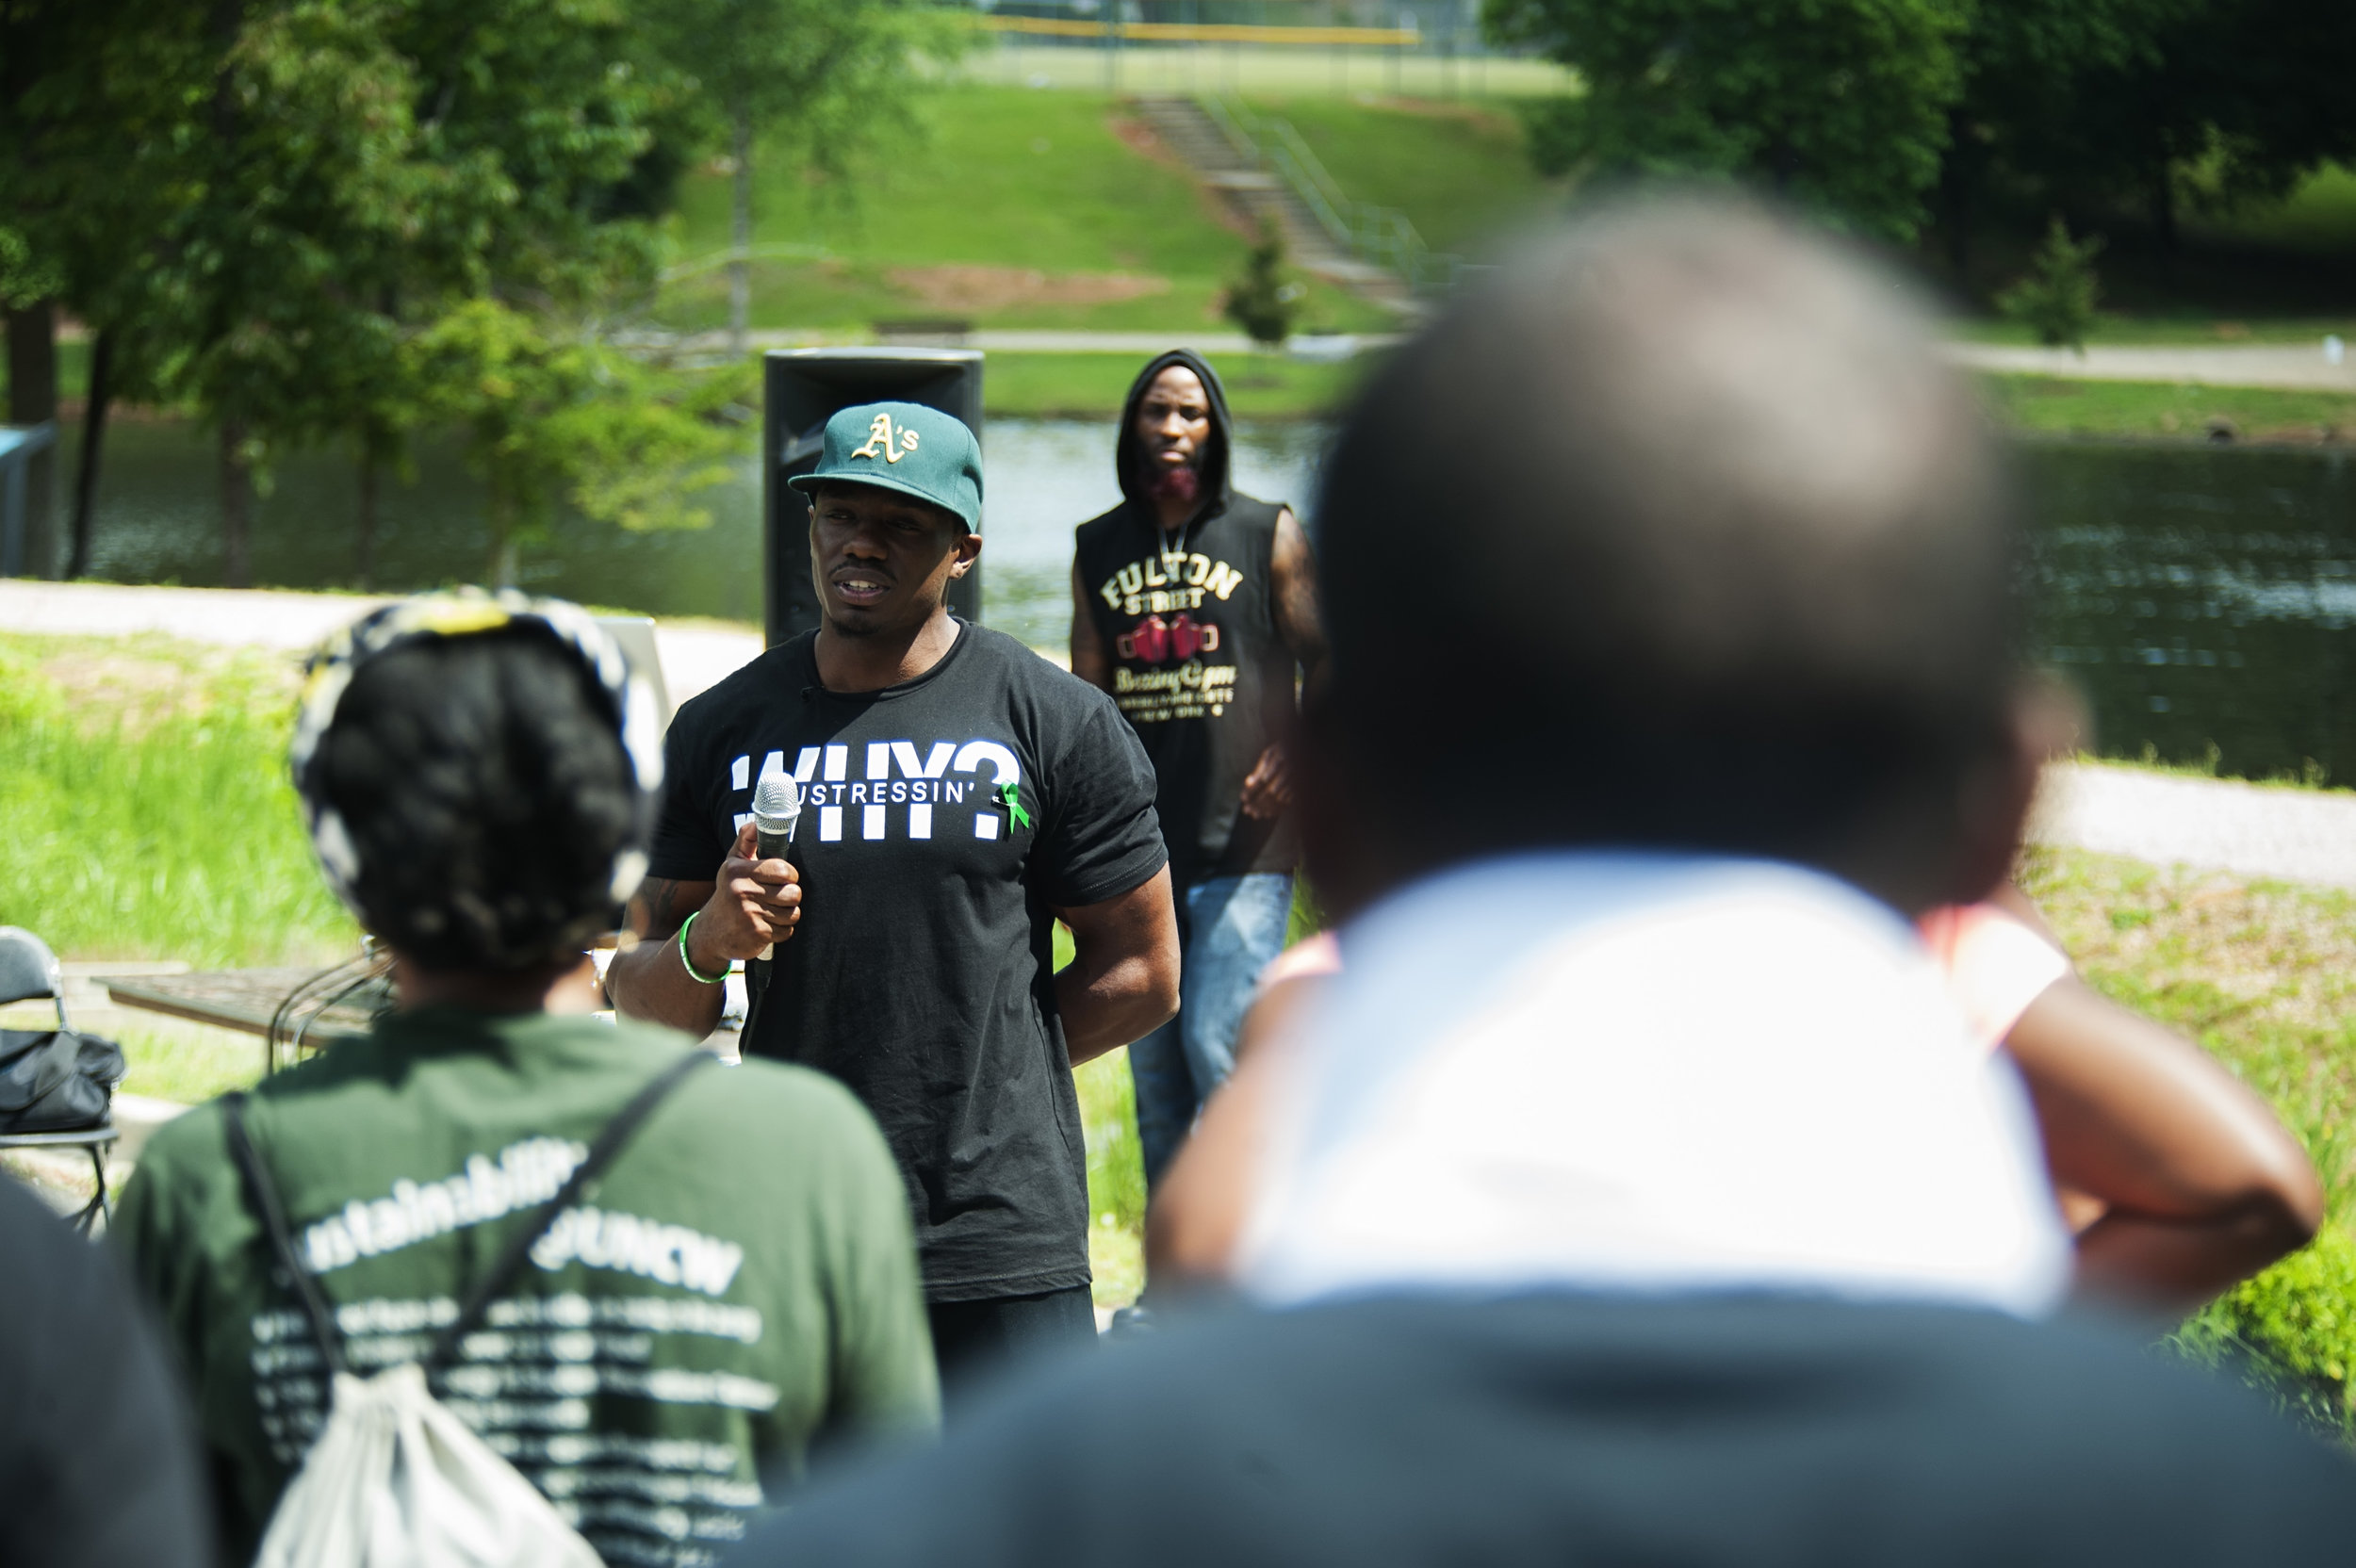 2nd Annual Let's Talk About It Mental Health Awareness Walk @ Park Rd Park 5-20-17 by Jon Strayhorn 155.jpg